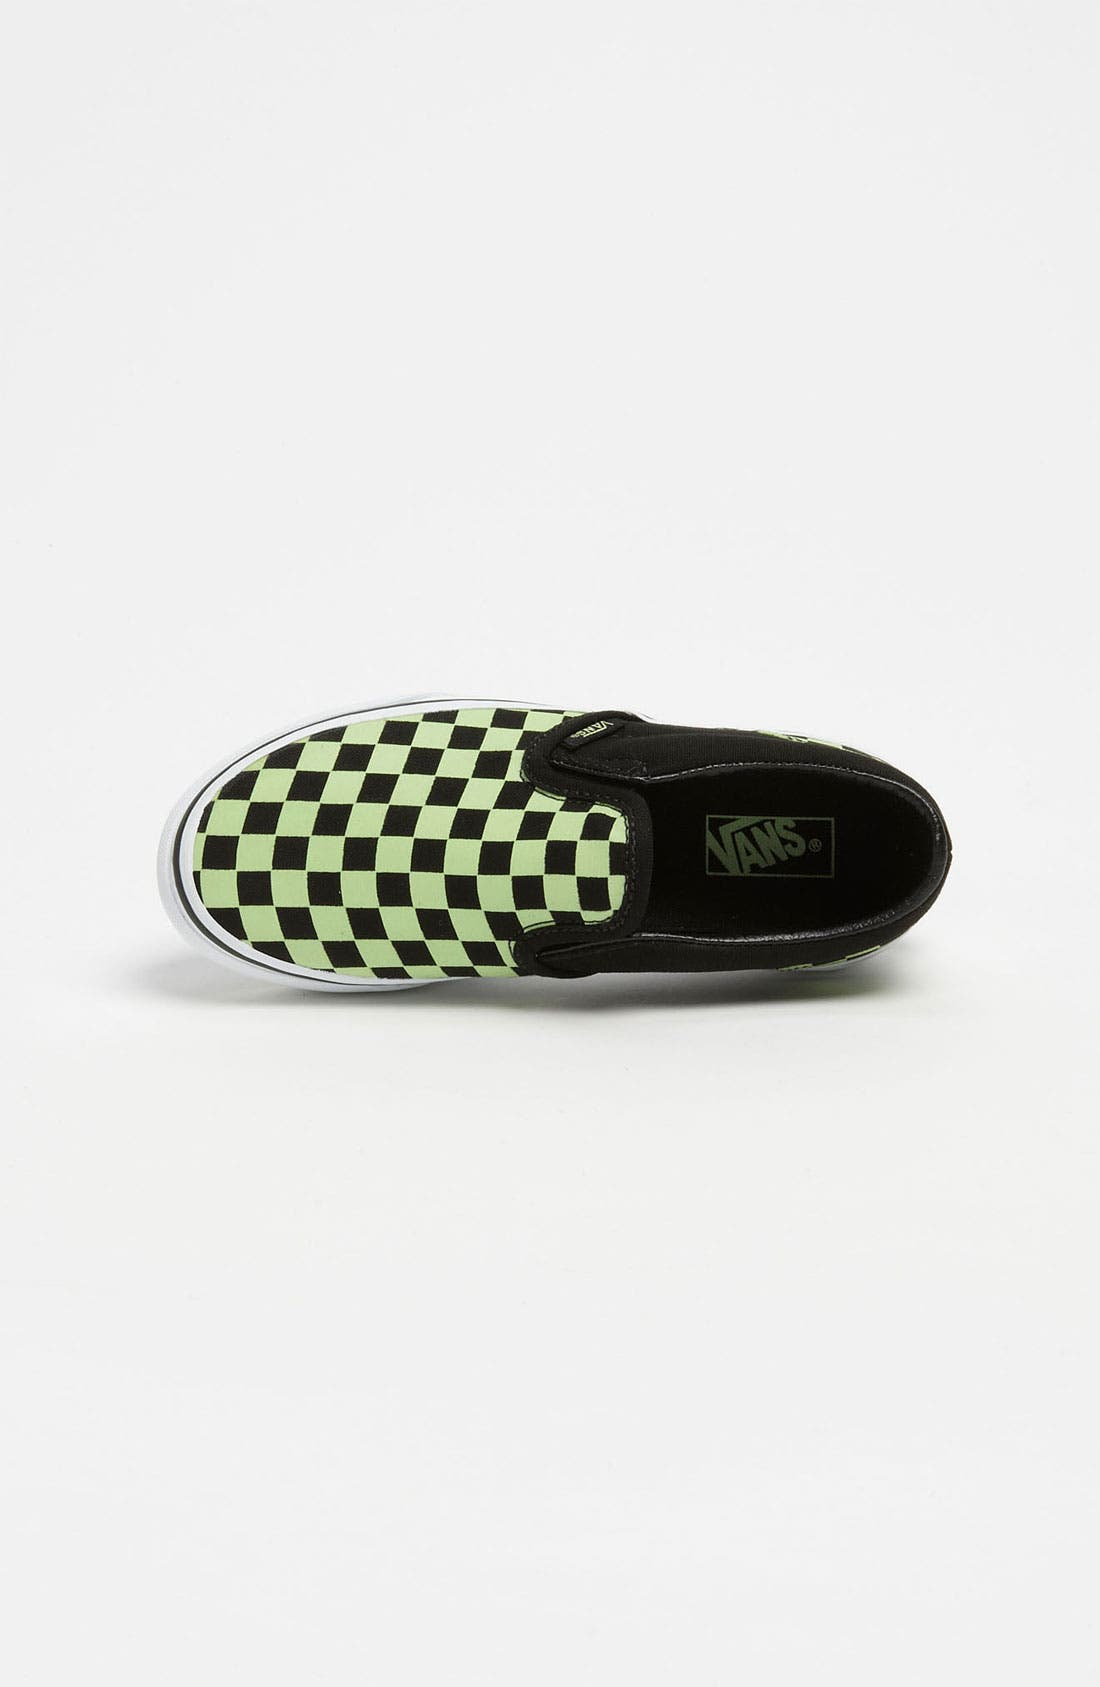 Alternate Image 3  - Vans 'Classic Checker - Glow in the Dark' Slip-On (Toddler, Little Kid & Bid Kid)